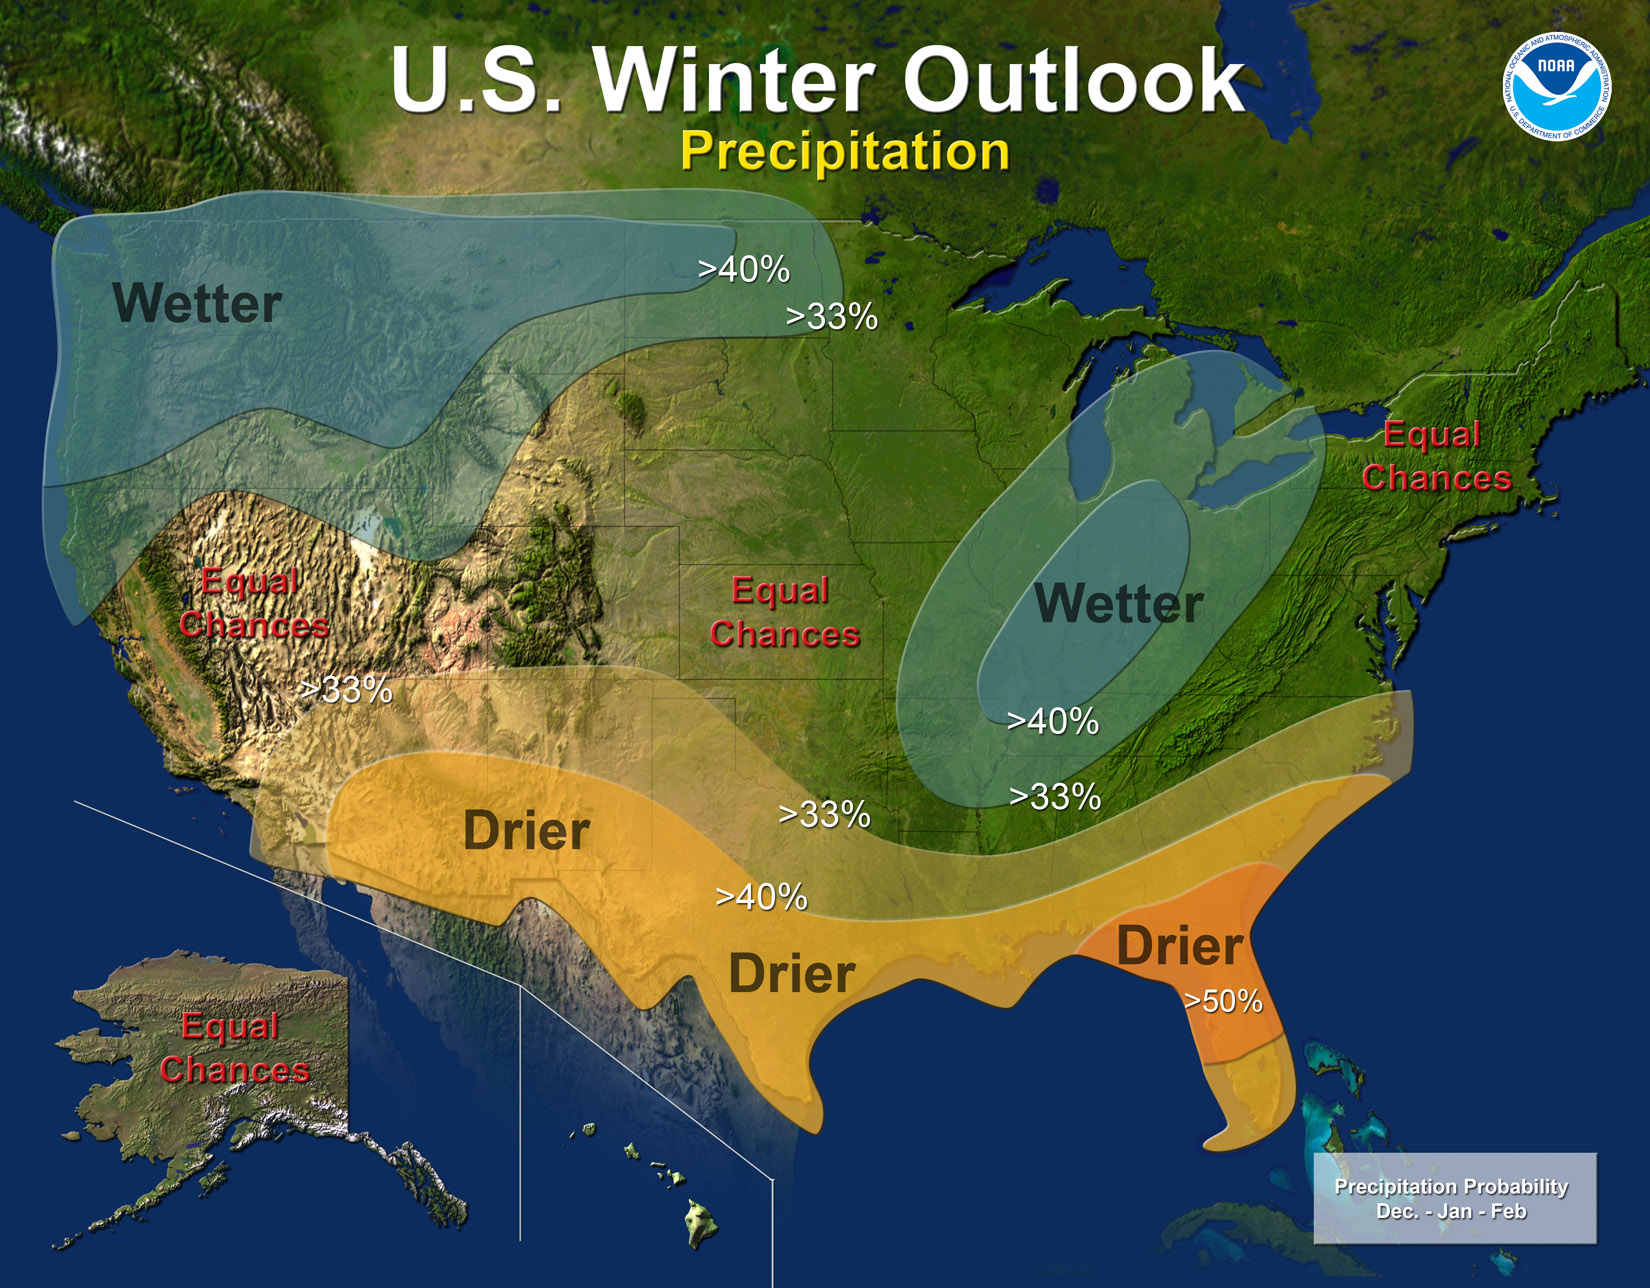 Winter outlook for precipitation (NOAA)